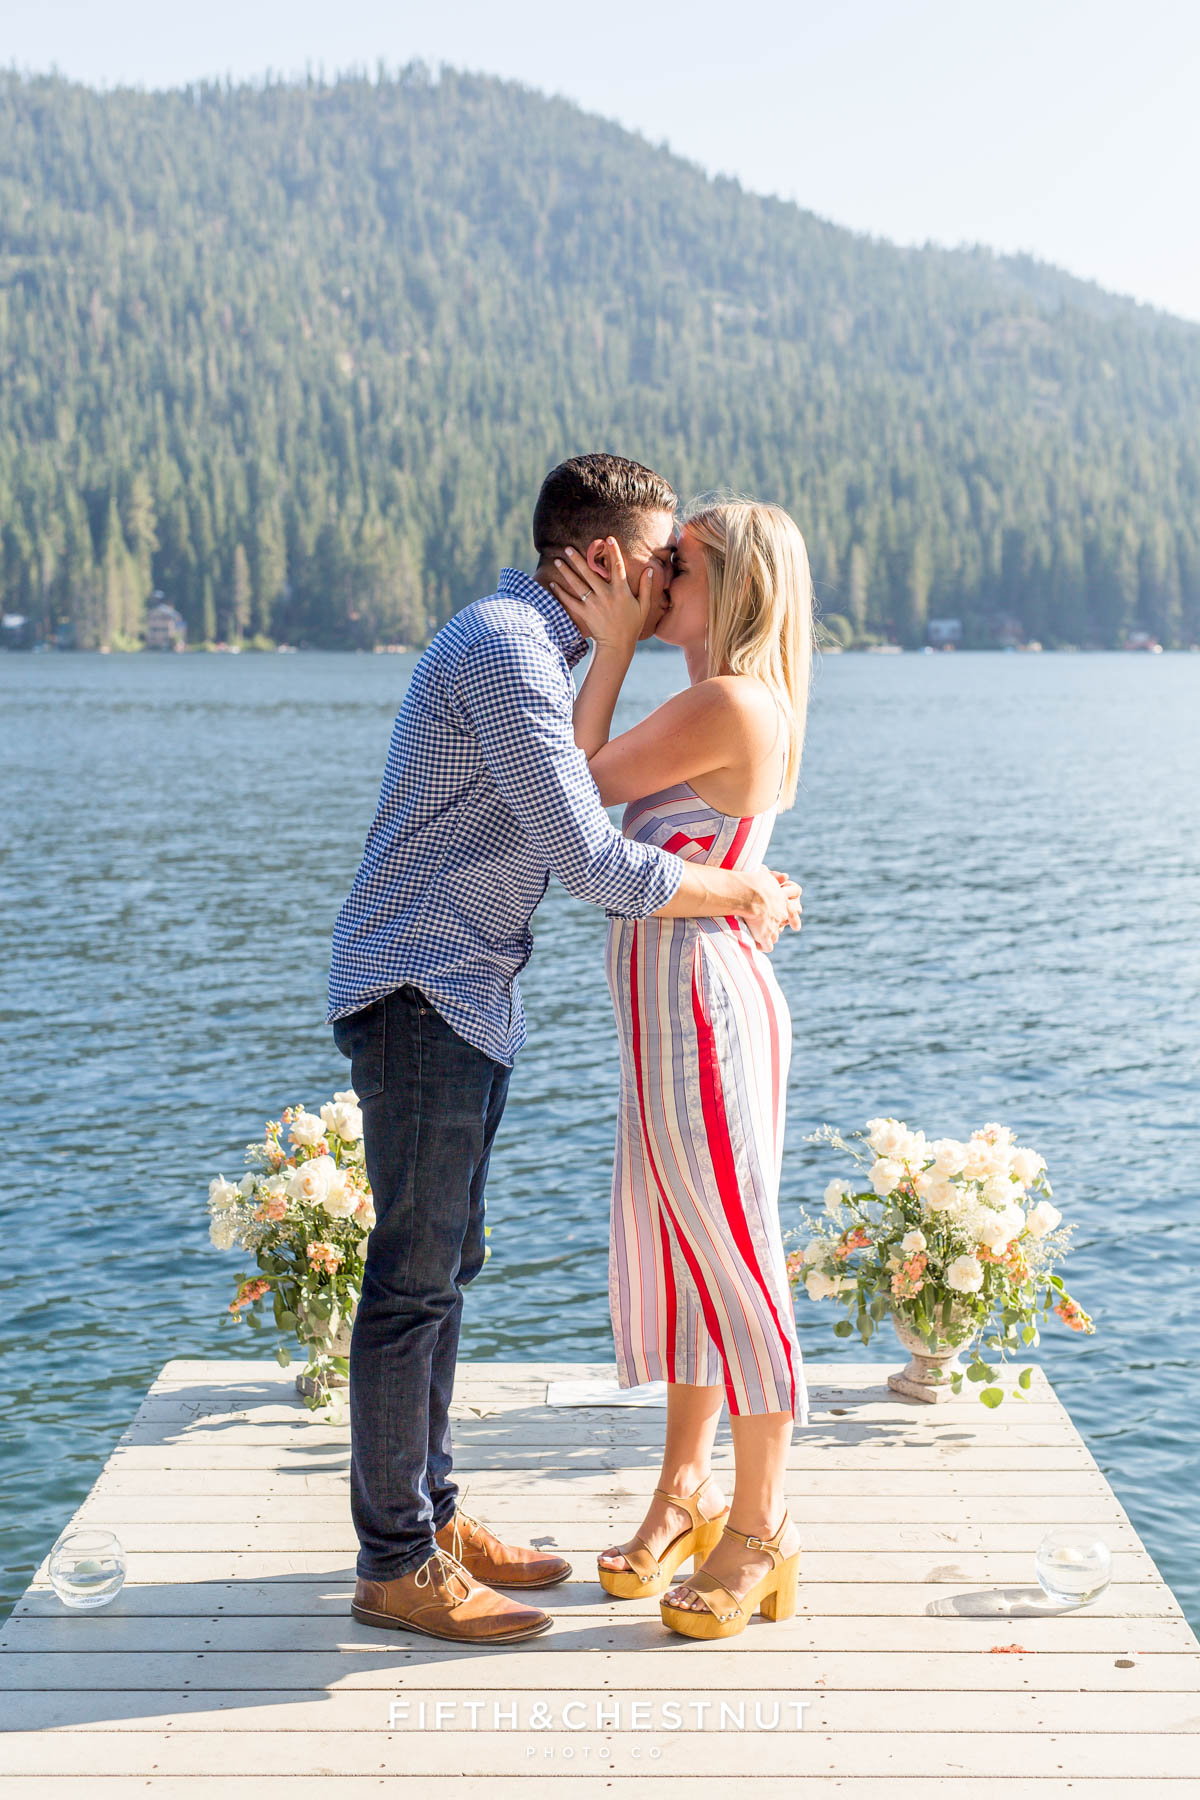 Newly engaged couple kissed with Donner Lake and trees in the background after their Donner Lake Proposal